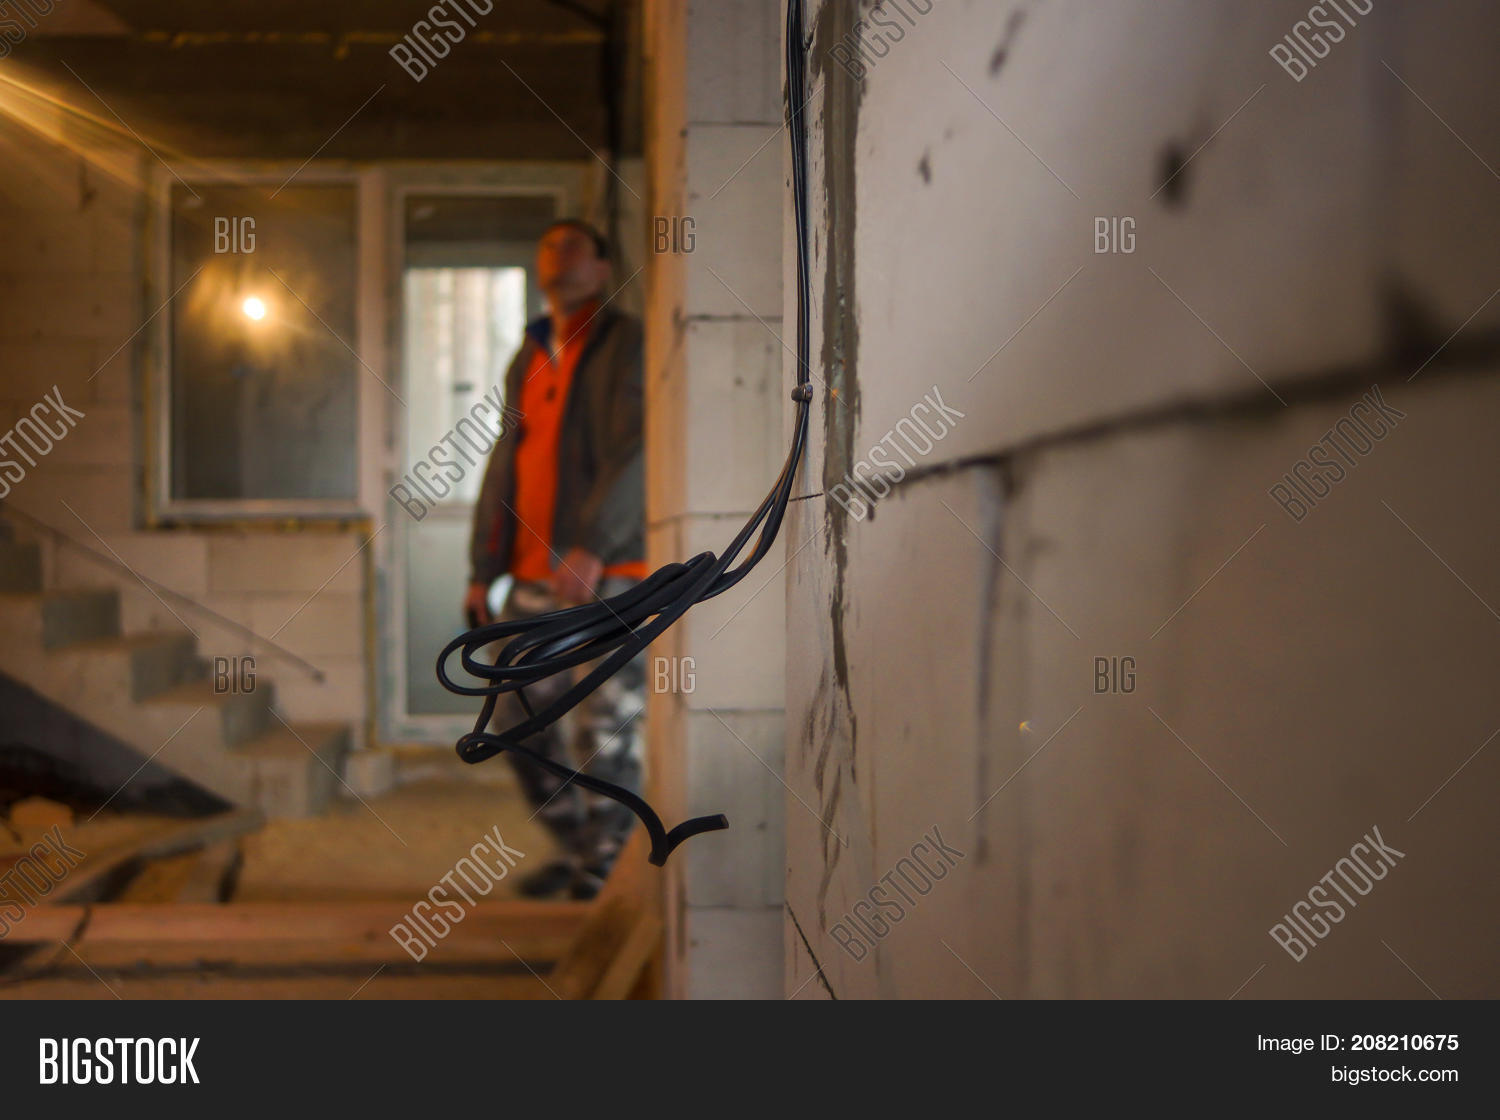 Closeup Wall Socket Image Photo Free Trial Bigstock Wiring Electrical Outlets For Electrician With Exposed Sockets The